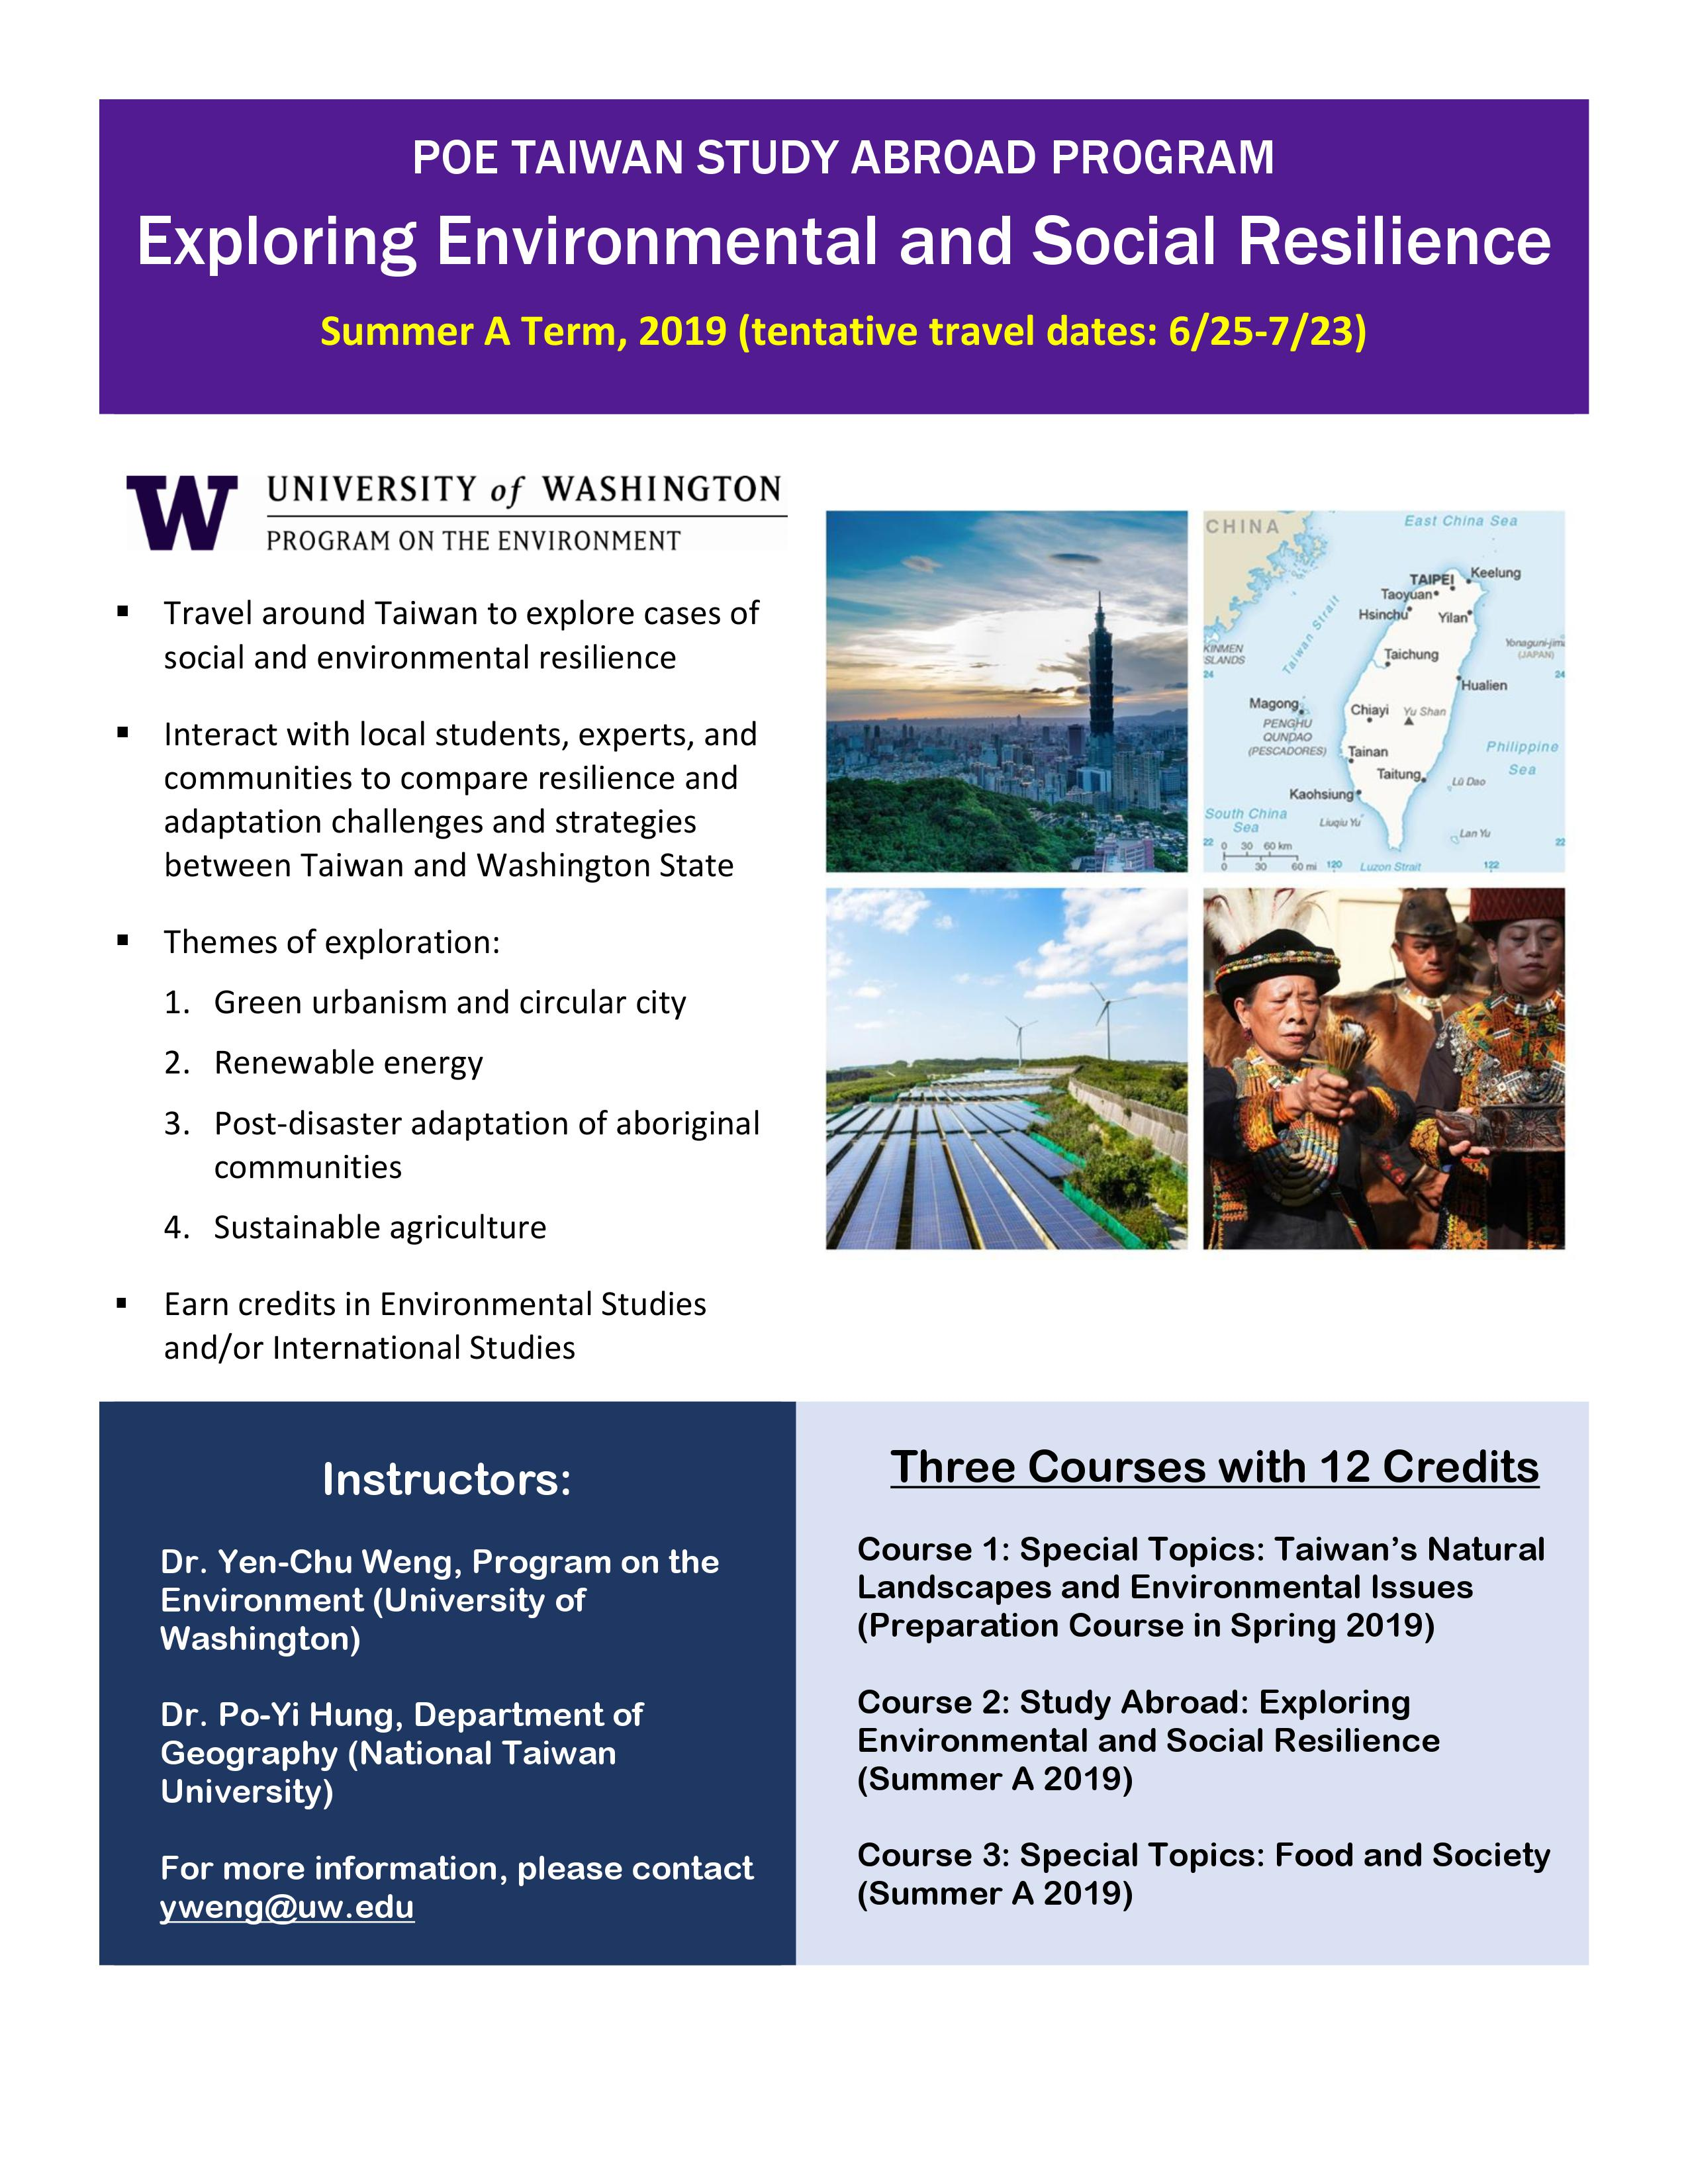 Taiwan Study Abroad Program (Summer 2019) Now Opens for